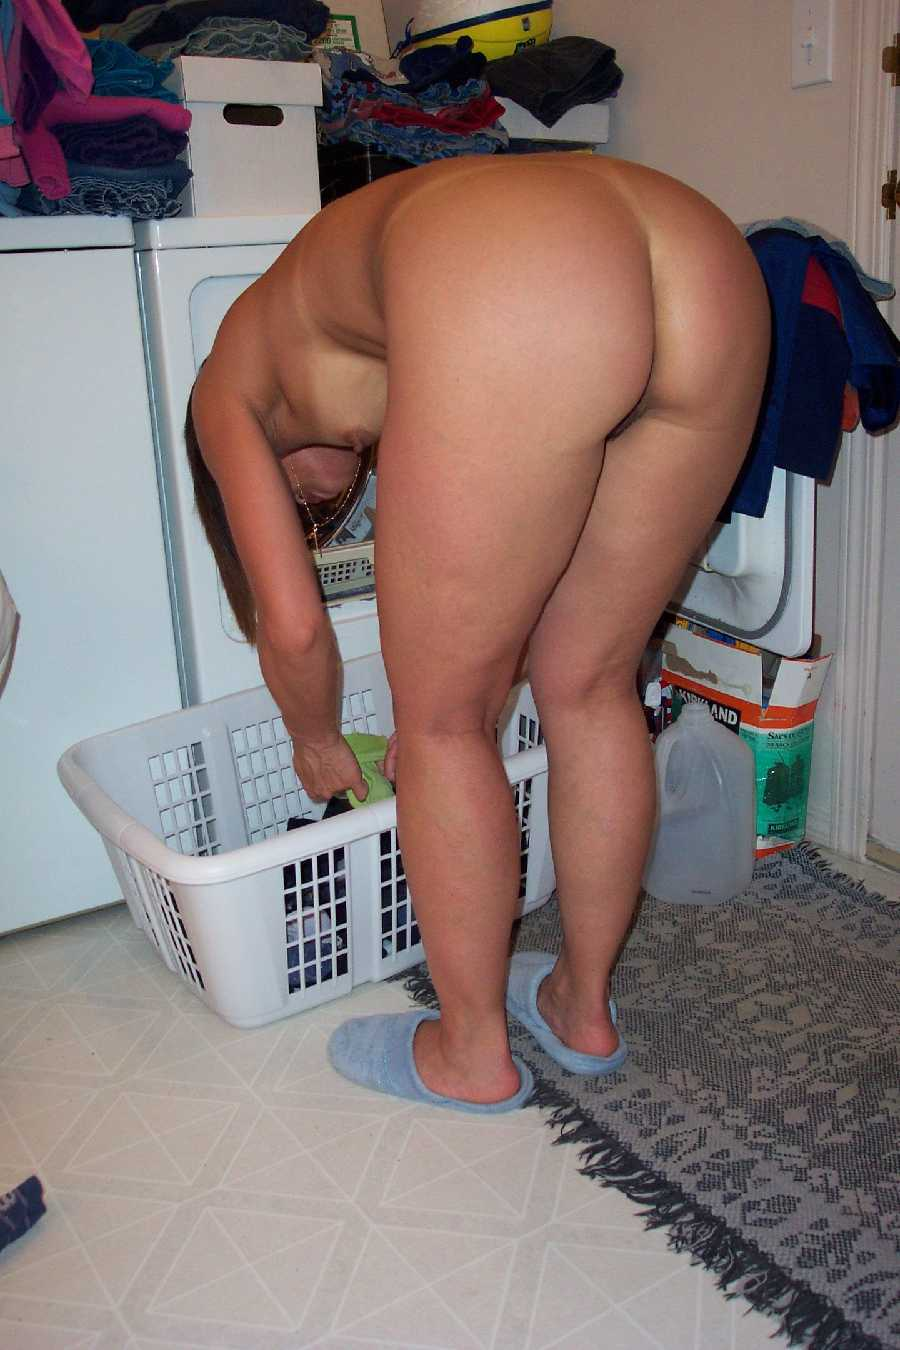 Naked girls doing housework pics, squirting girls porn online